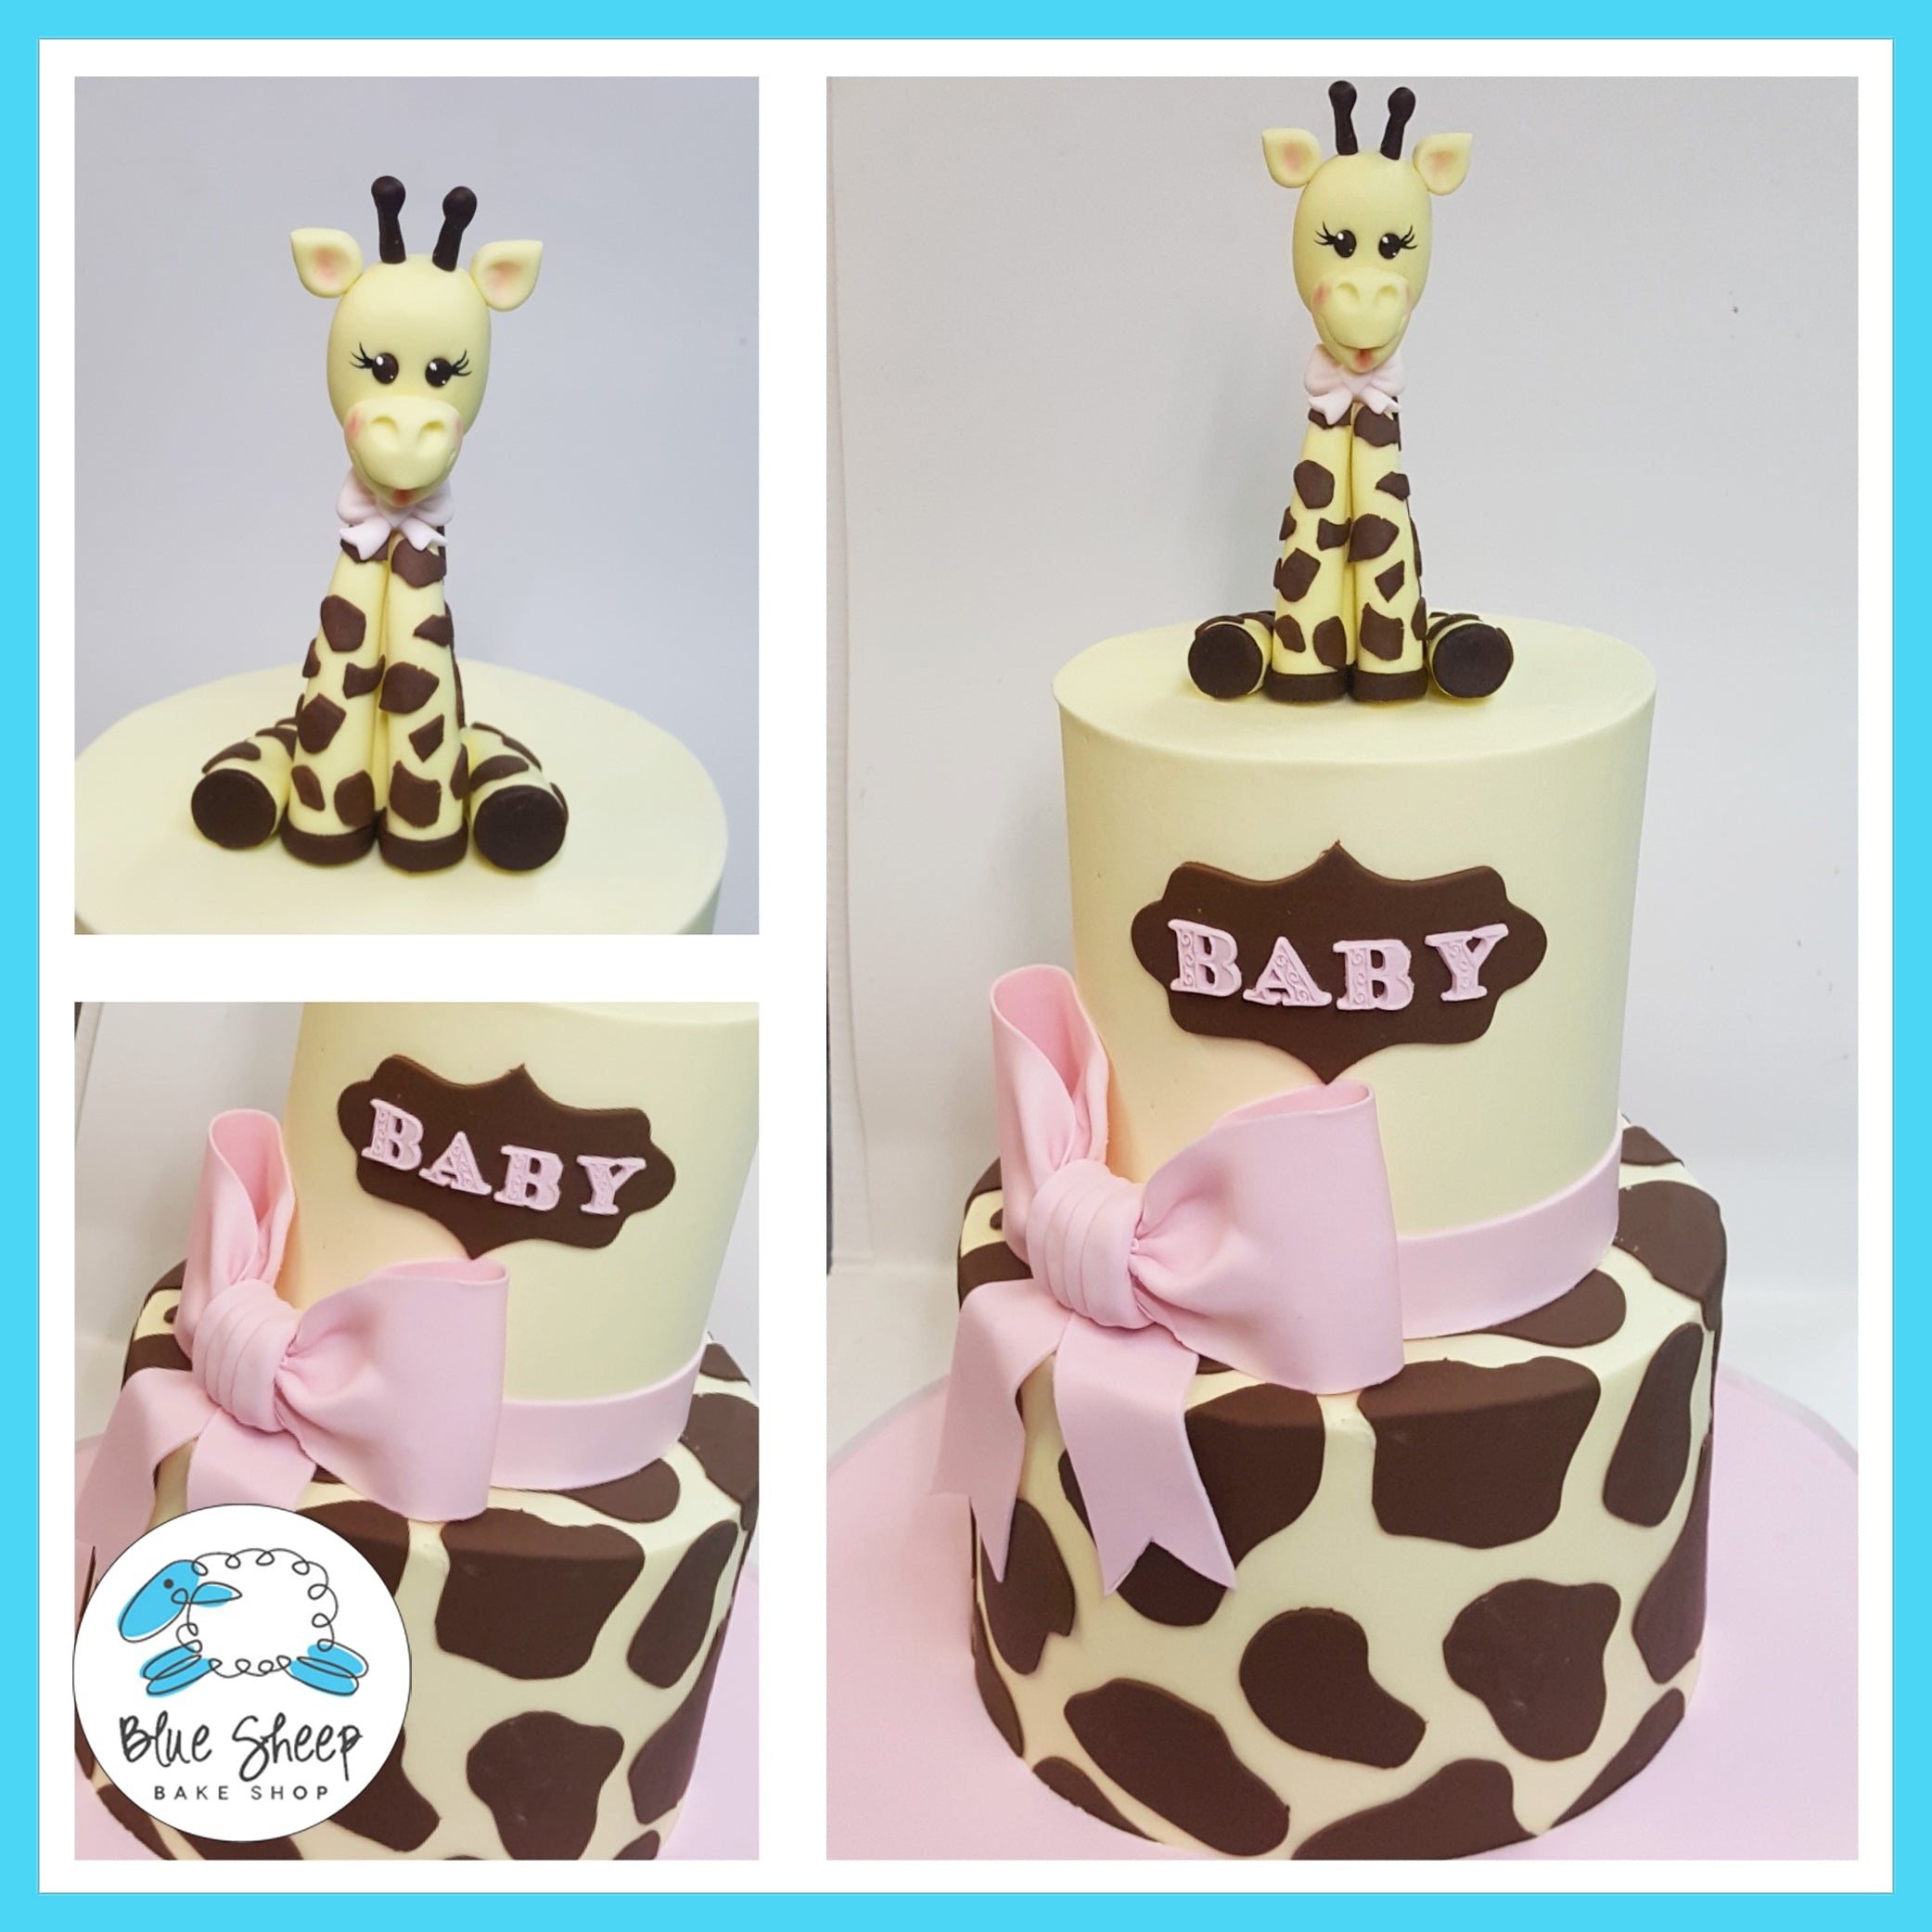 Pink Giraffe Baby Shower Cake Blue Sheep Bake Shop